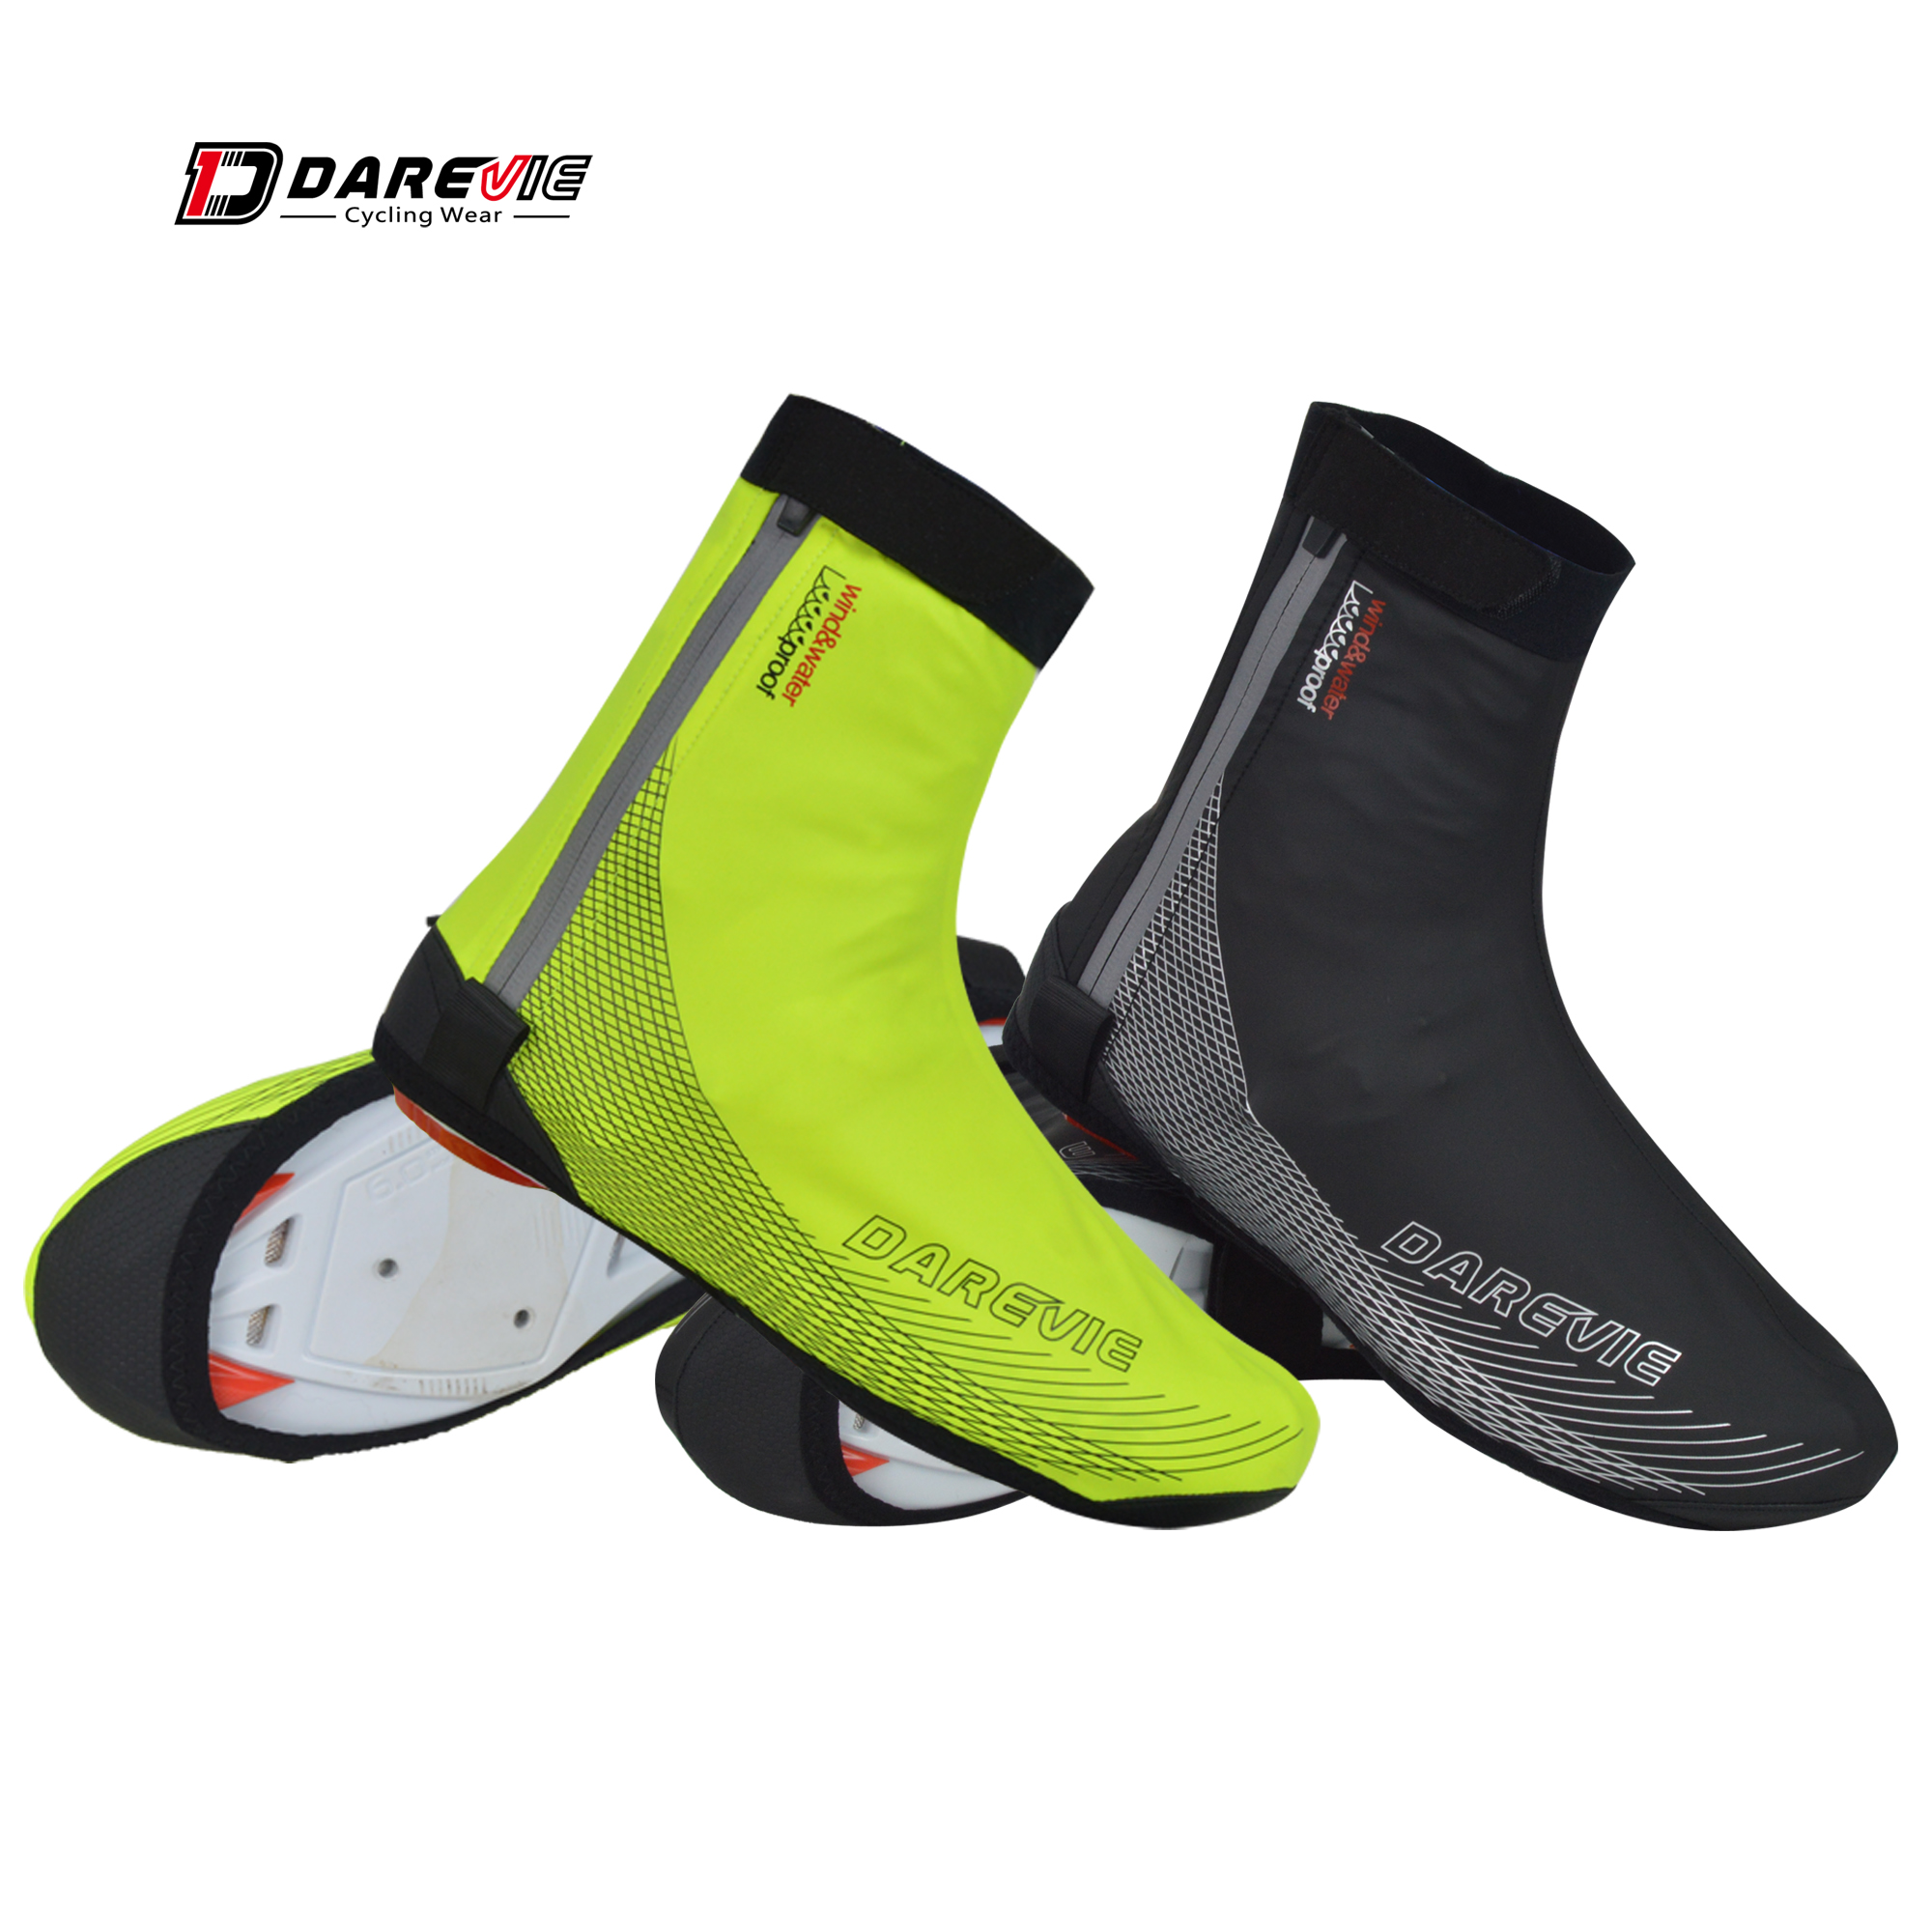 Darevie Cycling Shoes Covers…